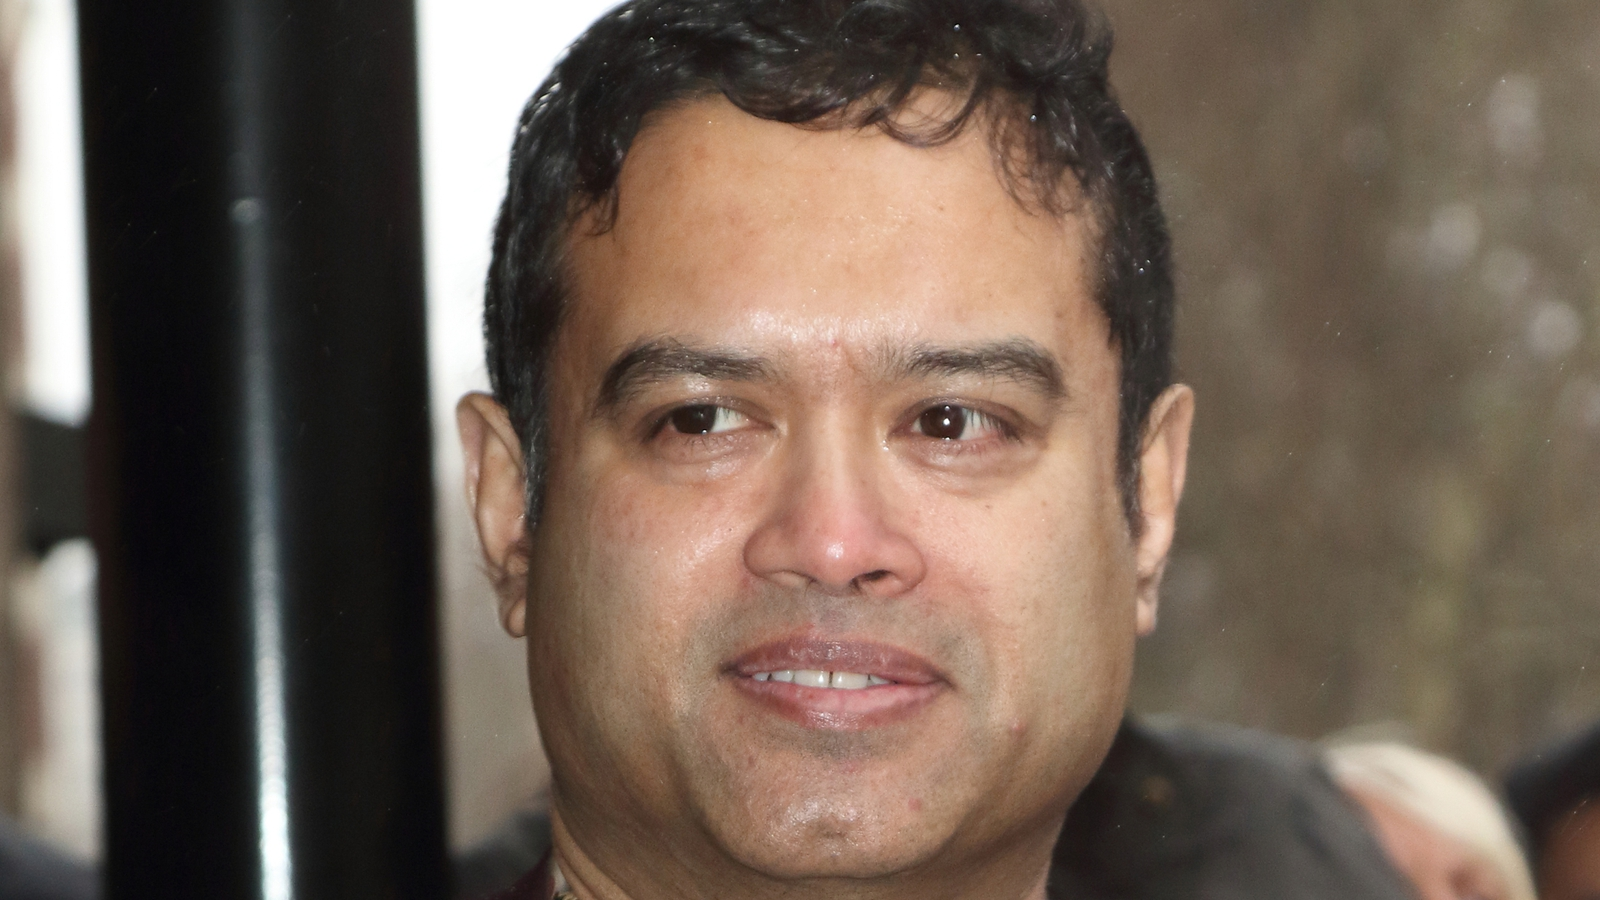 The Chase star Paul Sinha reveals Parkinson's diagnosis